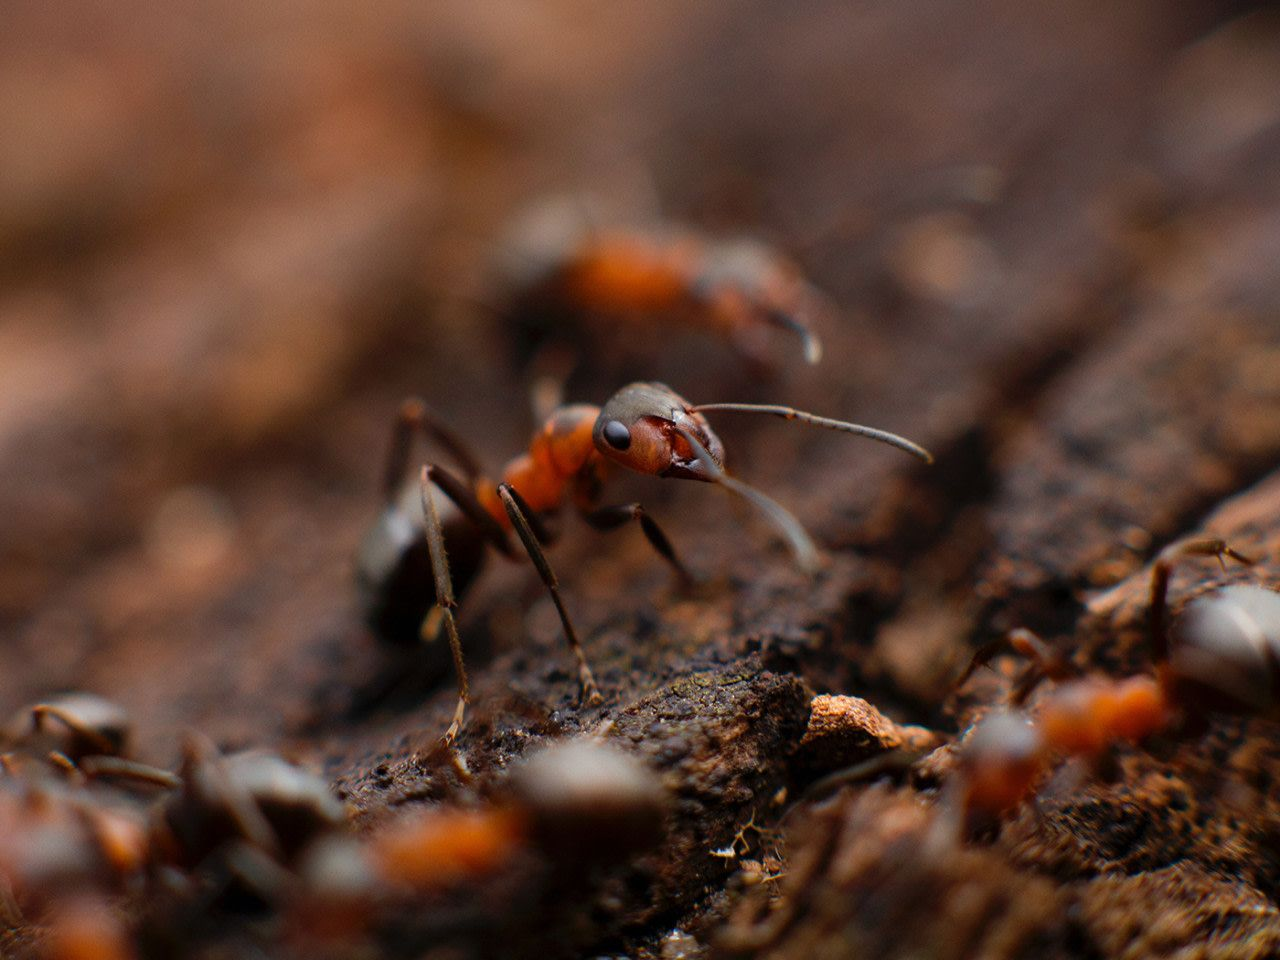 How To Get Rid Of Carpenter Ants In A Camper